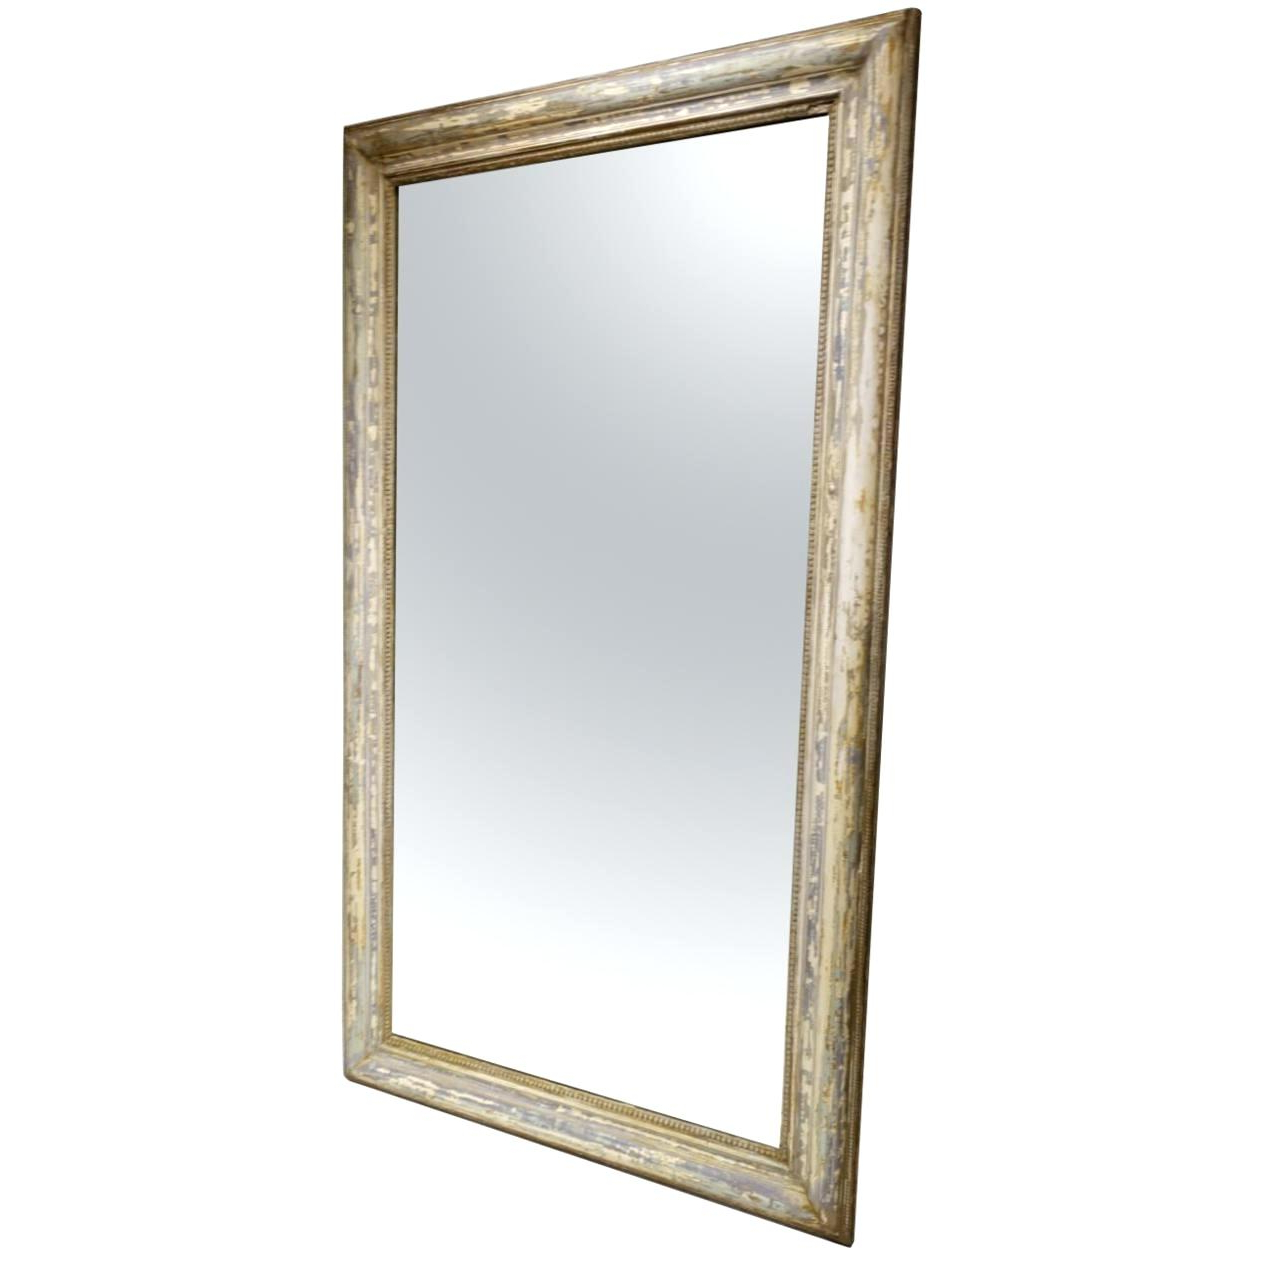 Large Wall Mirrors Ikea Inside Trendy Large Wooden Mirror Ikea Extra Frame Wall Wood Handsome (View 8 of 20)